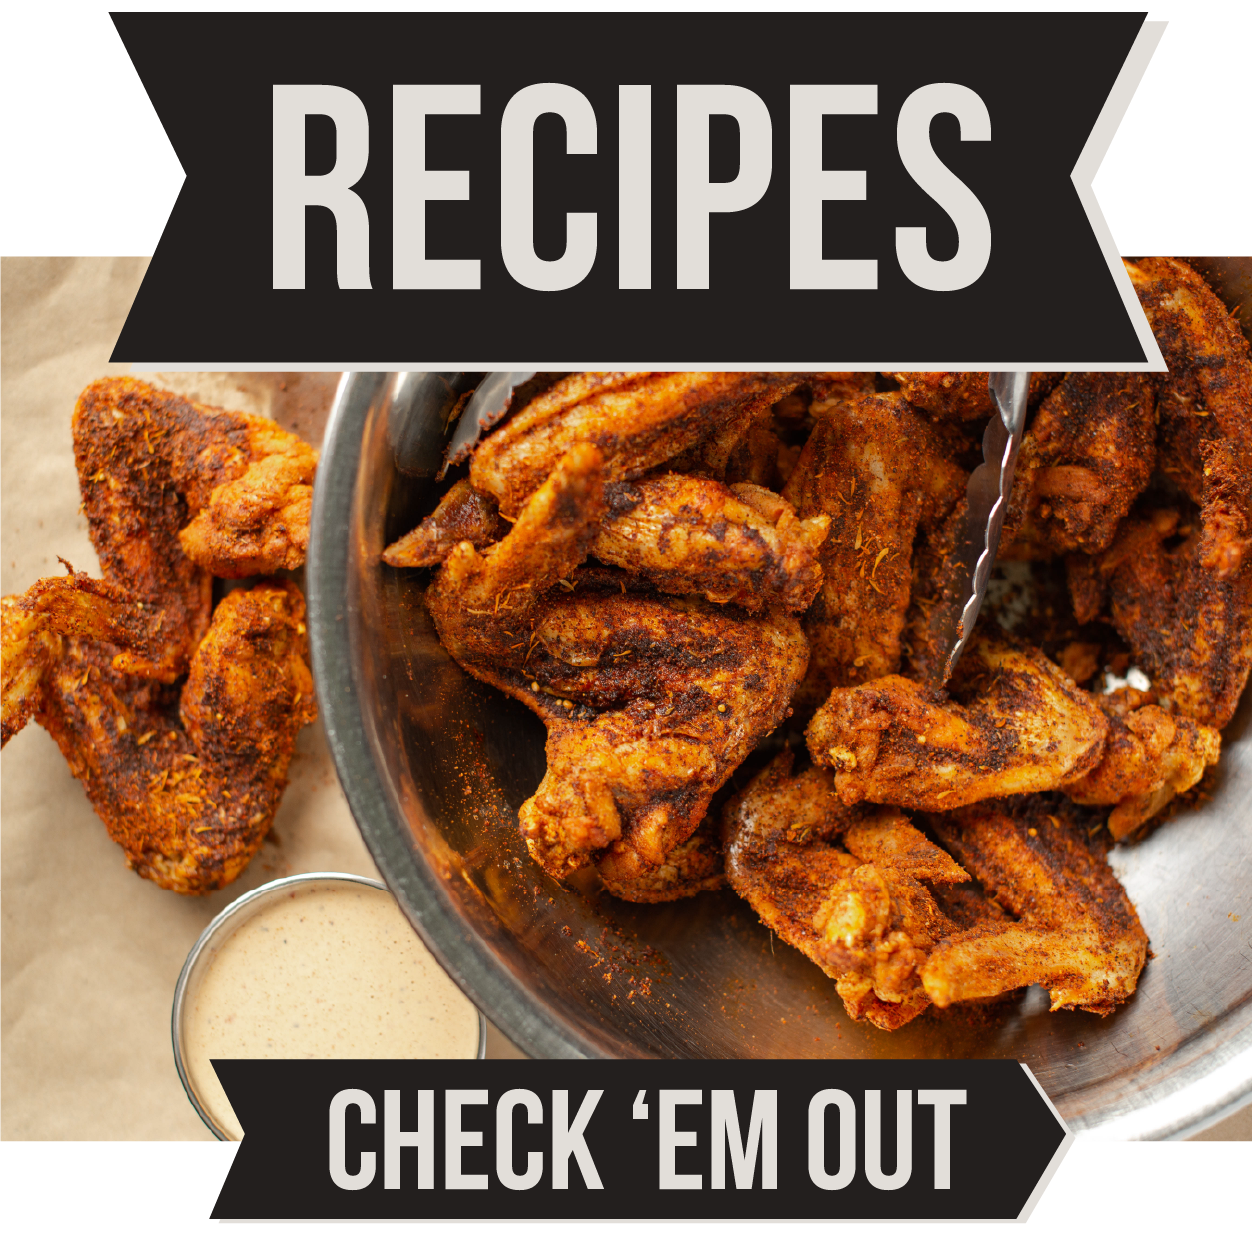 Martin's BBQ Recipes